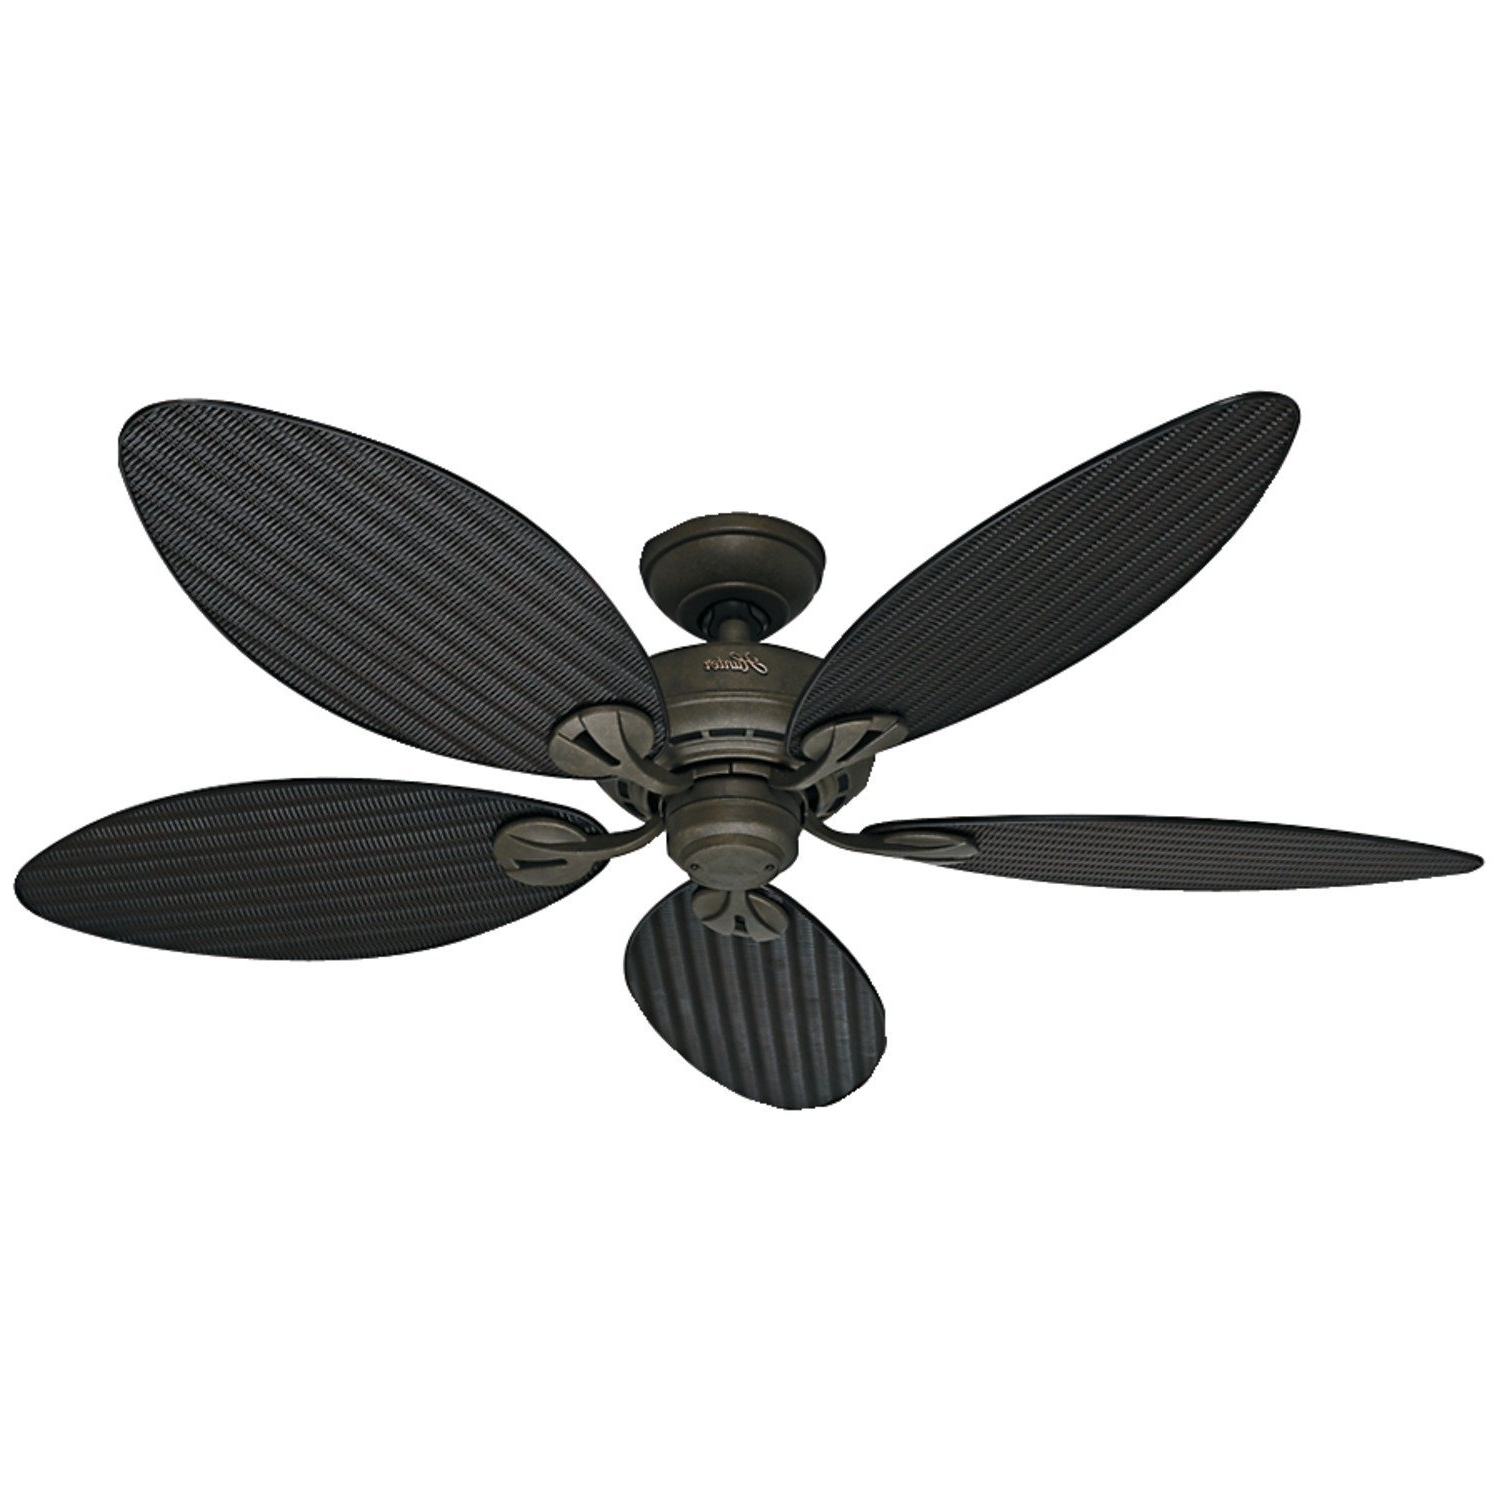 2018 Ceiling: Marvellous Ceiling Fans With Leaf Shaped Blades Wicker With Outdoor Ceiling Fans With Palm Blades (View 1 of 20)